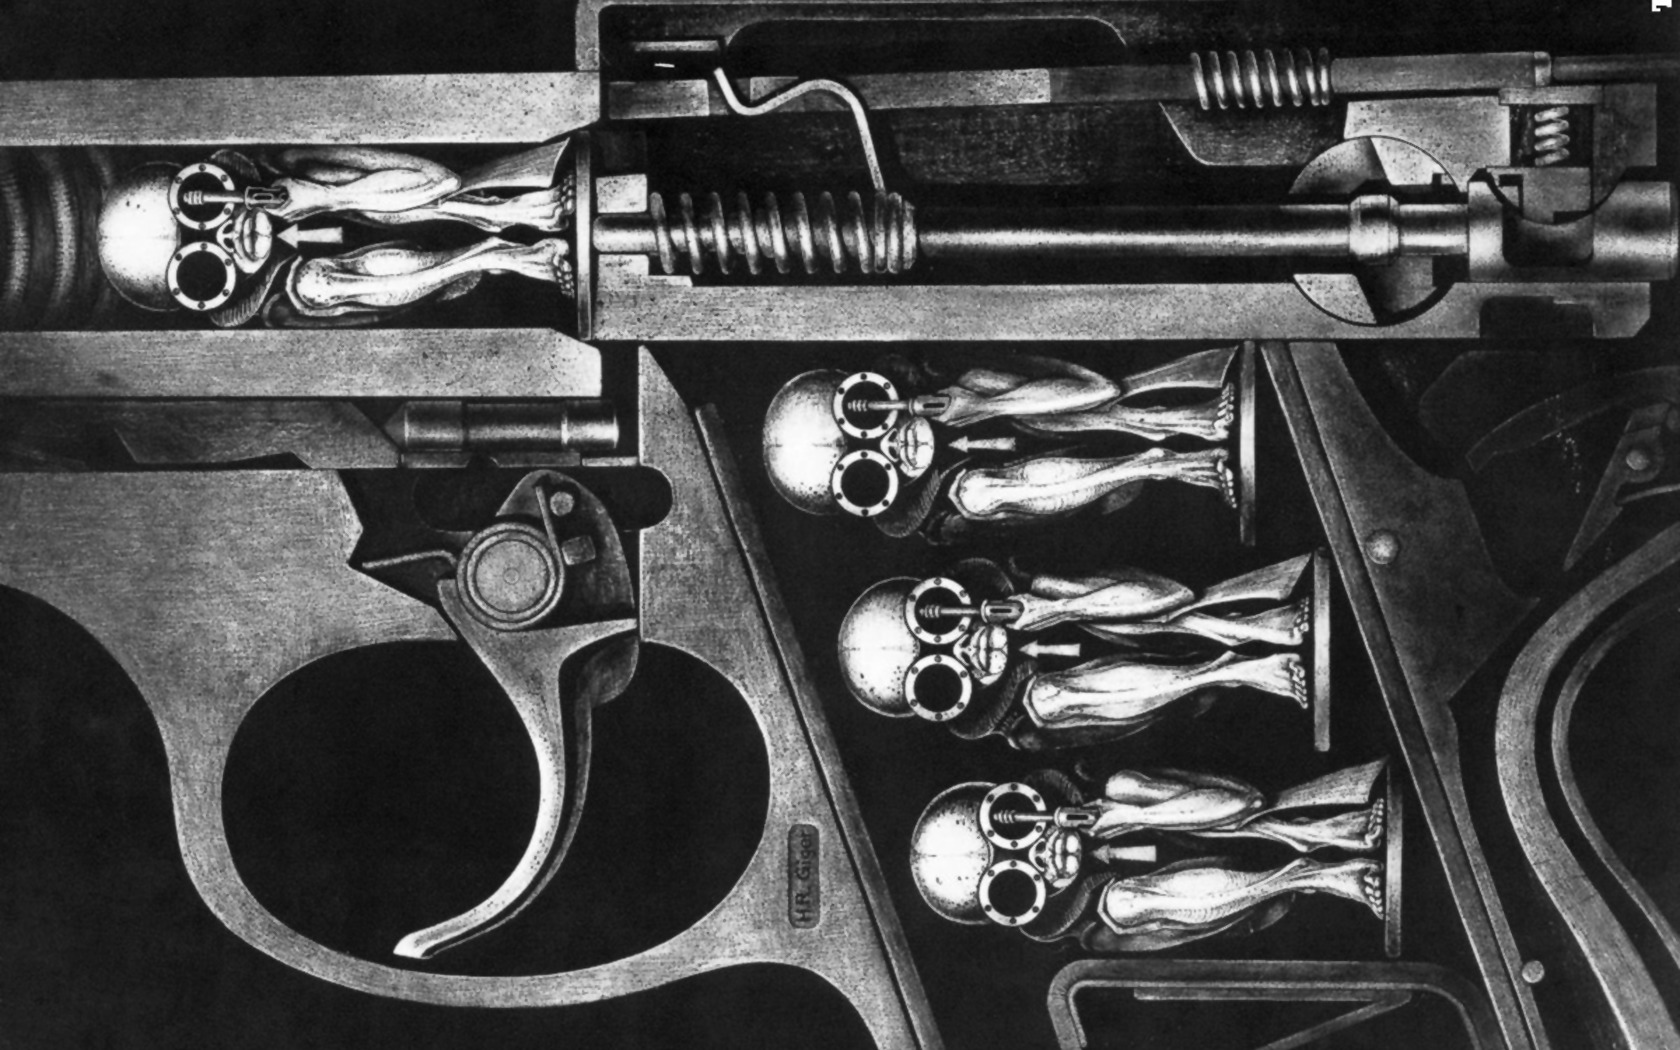 Guns hr giger Machines HD Wallpaper